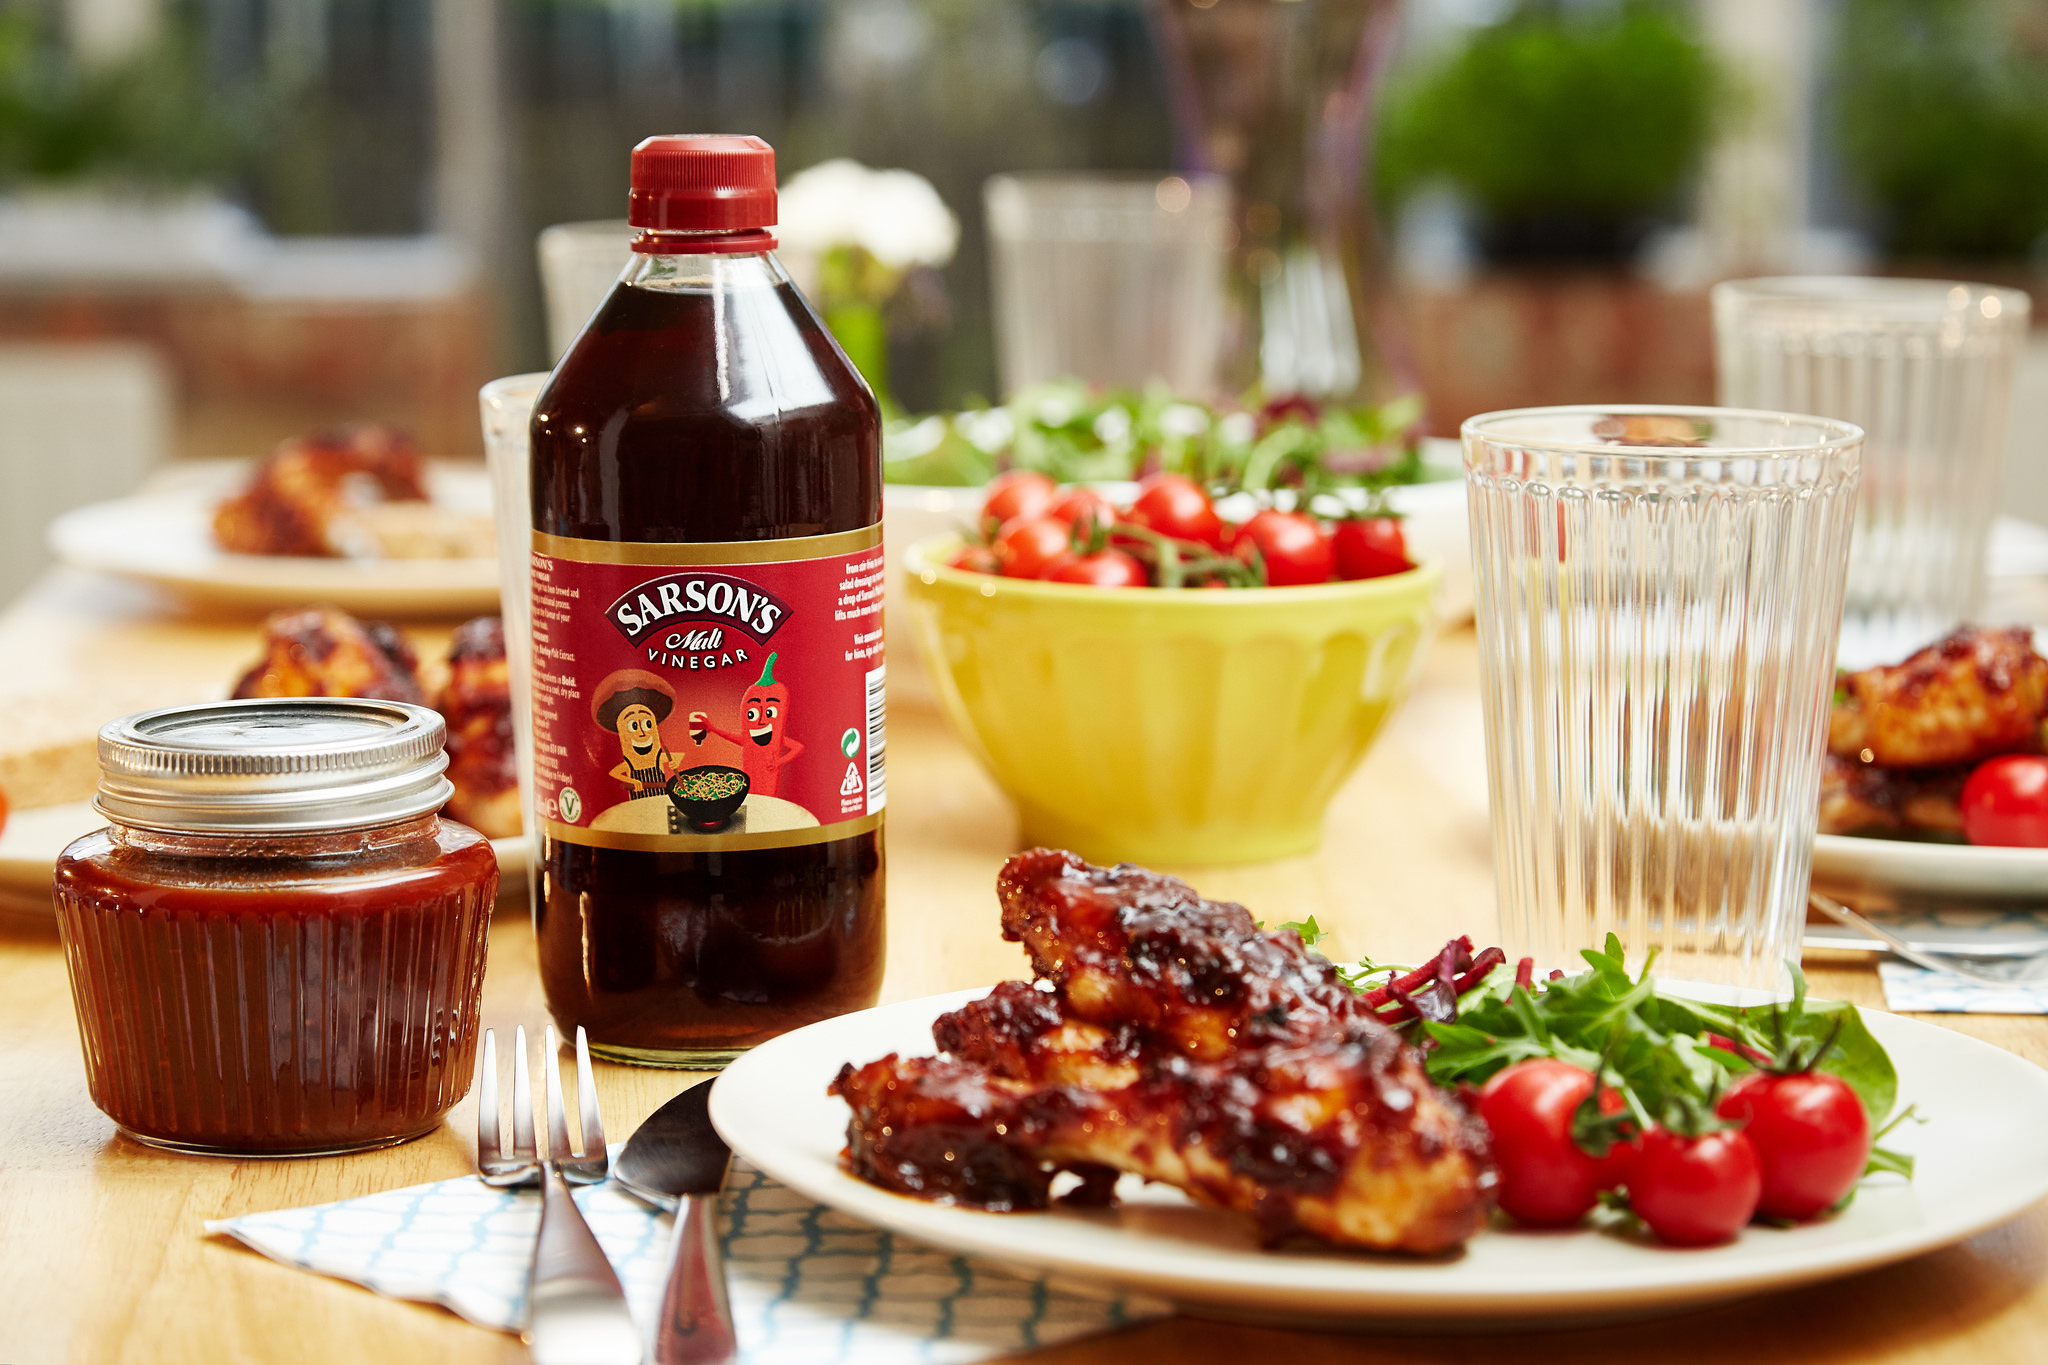 Sarson's: The Power of Vinegar - Round Up